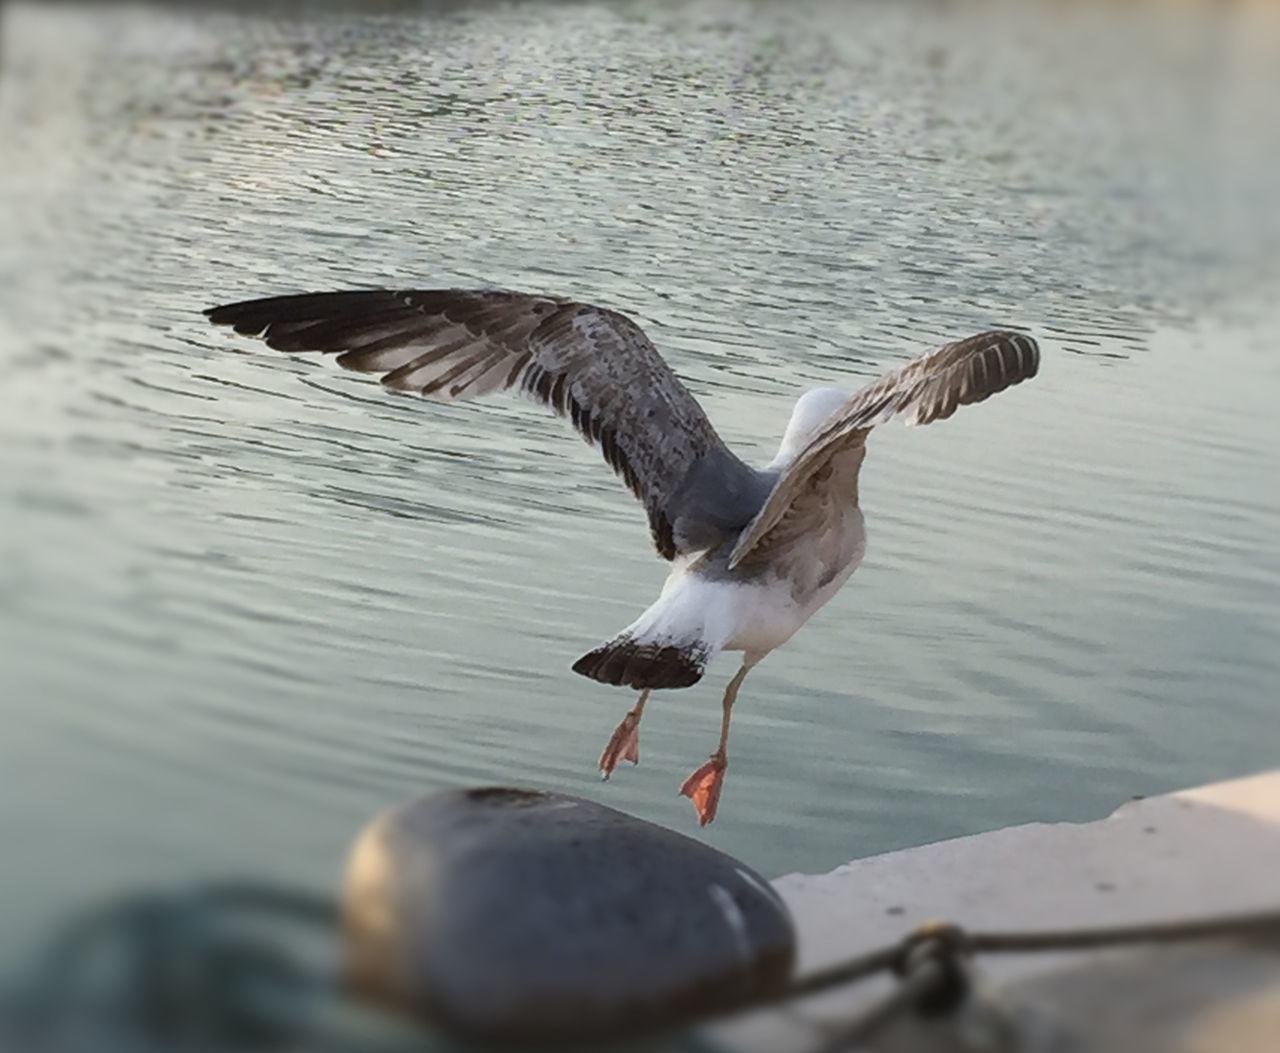 Flying away Bird Day Flying No People One Animal Outdoors Seagull Sfocatura Spread Wings Water